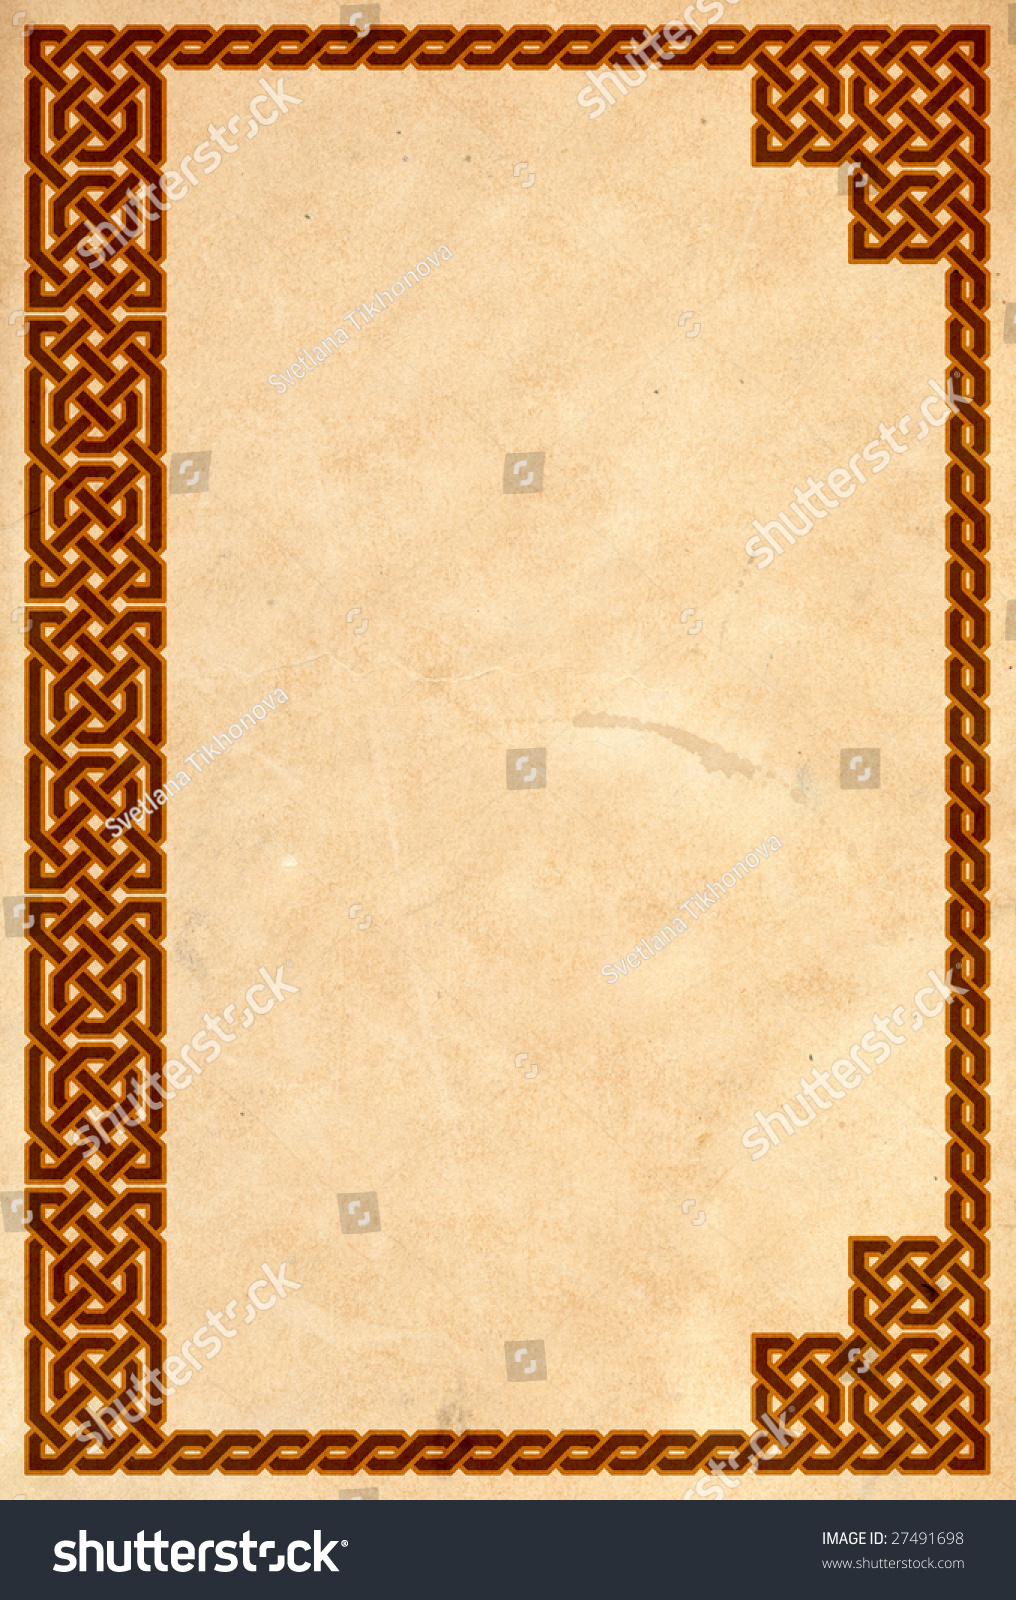 Vintage Book Cover Border : Old book cover traditional celtic border stock photo